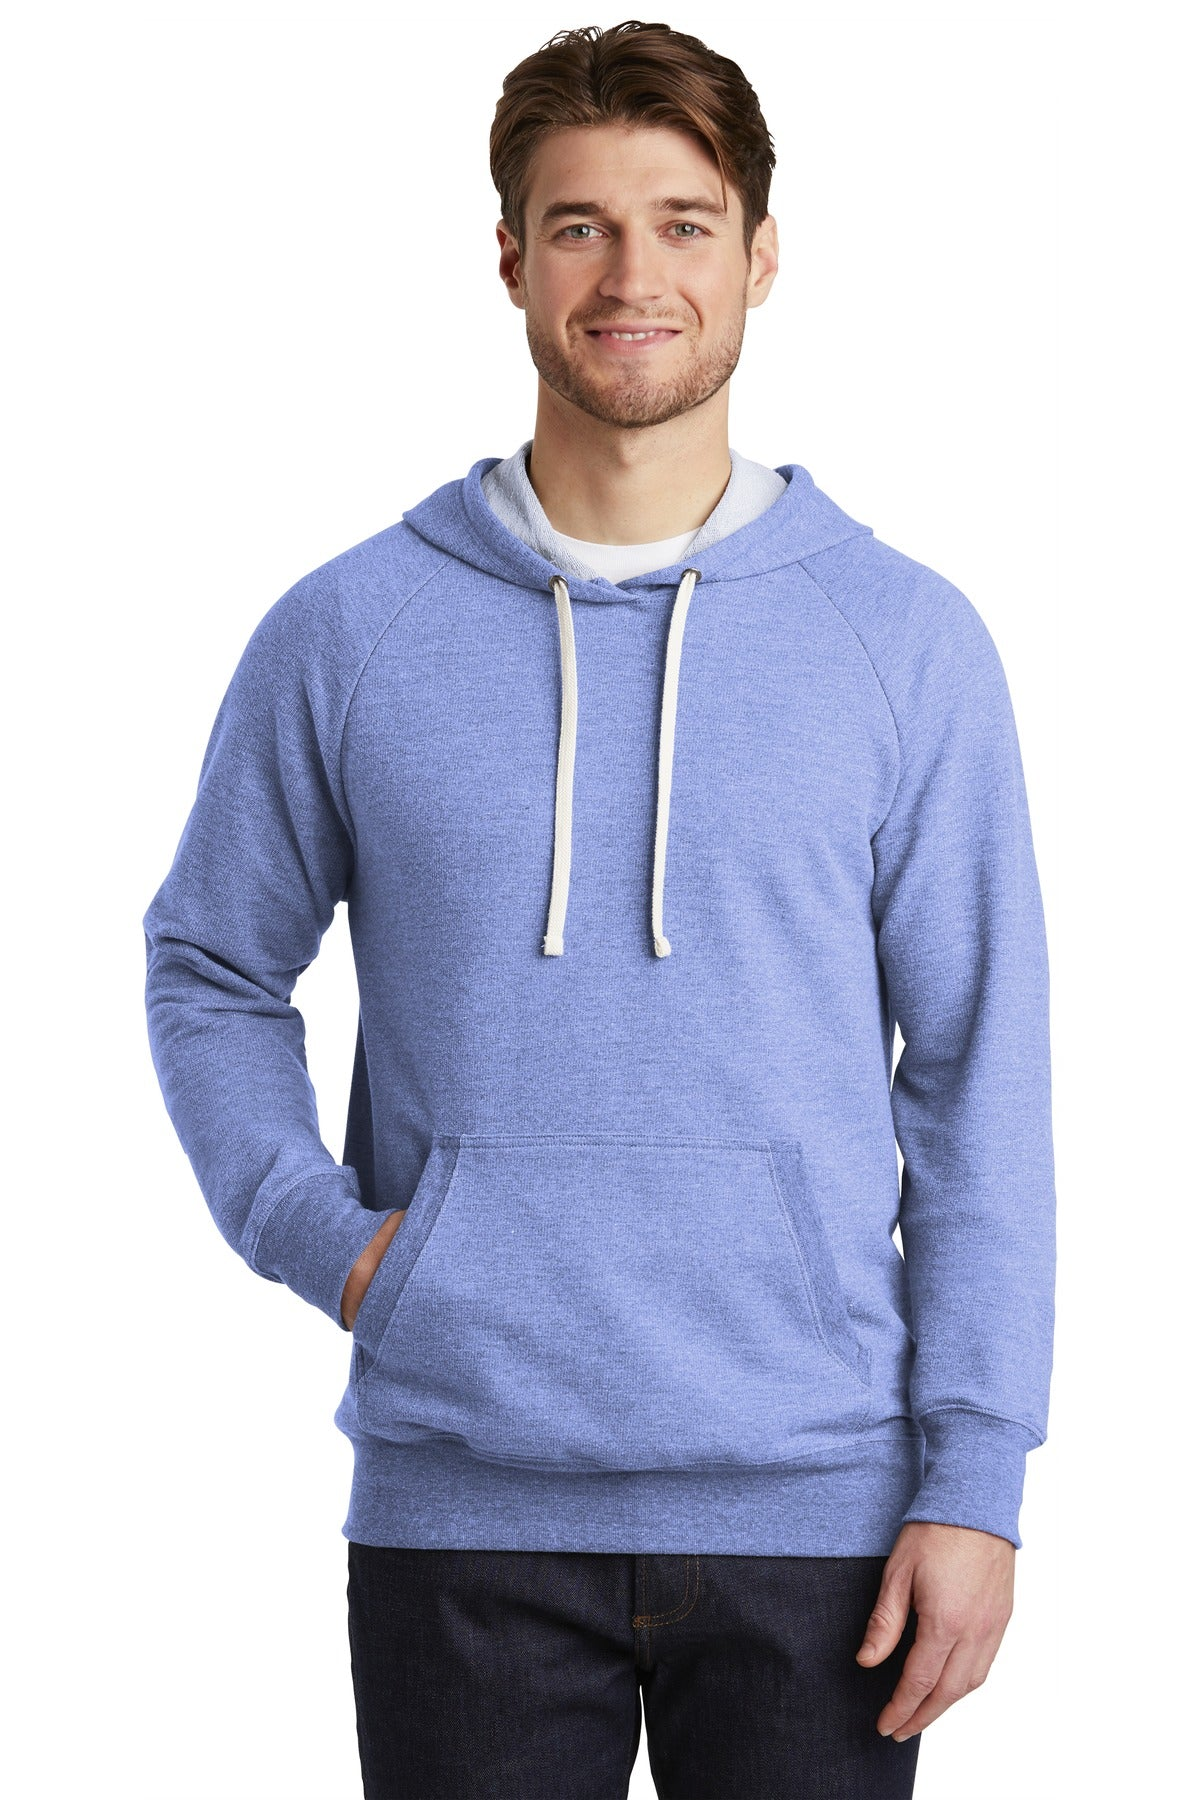 District DT355 Perfect Tri French Terry Hoodie - Maritime Frost - HIT A Double